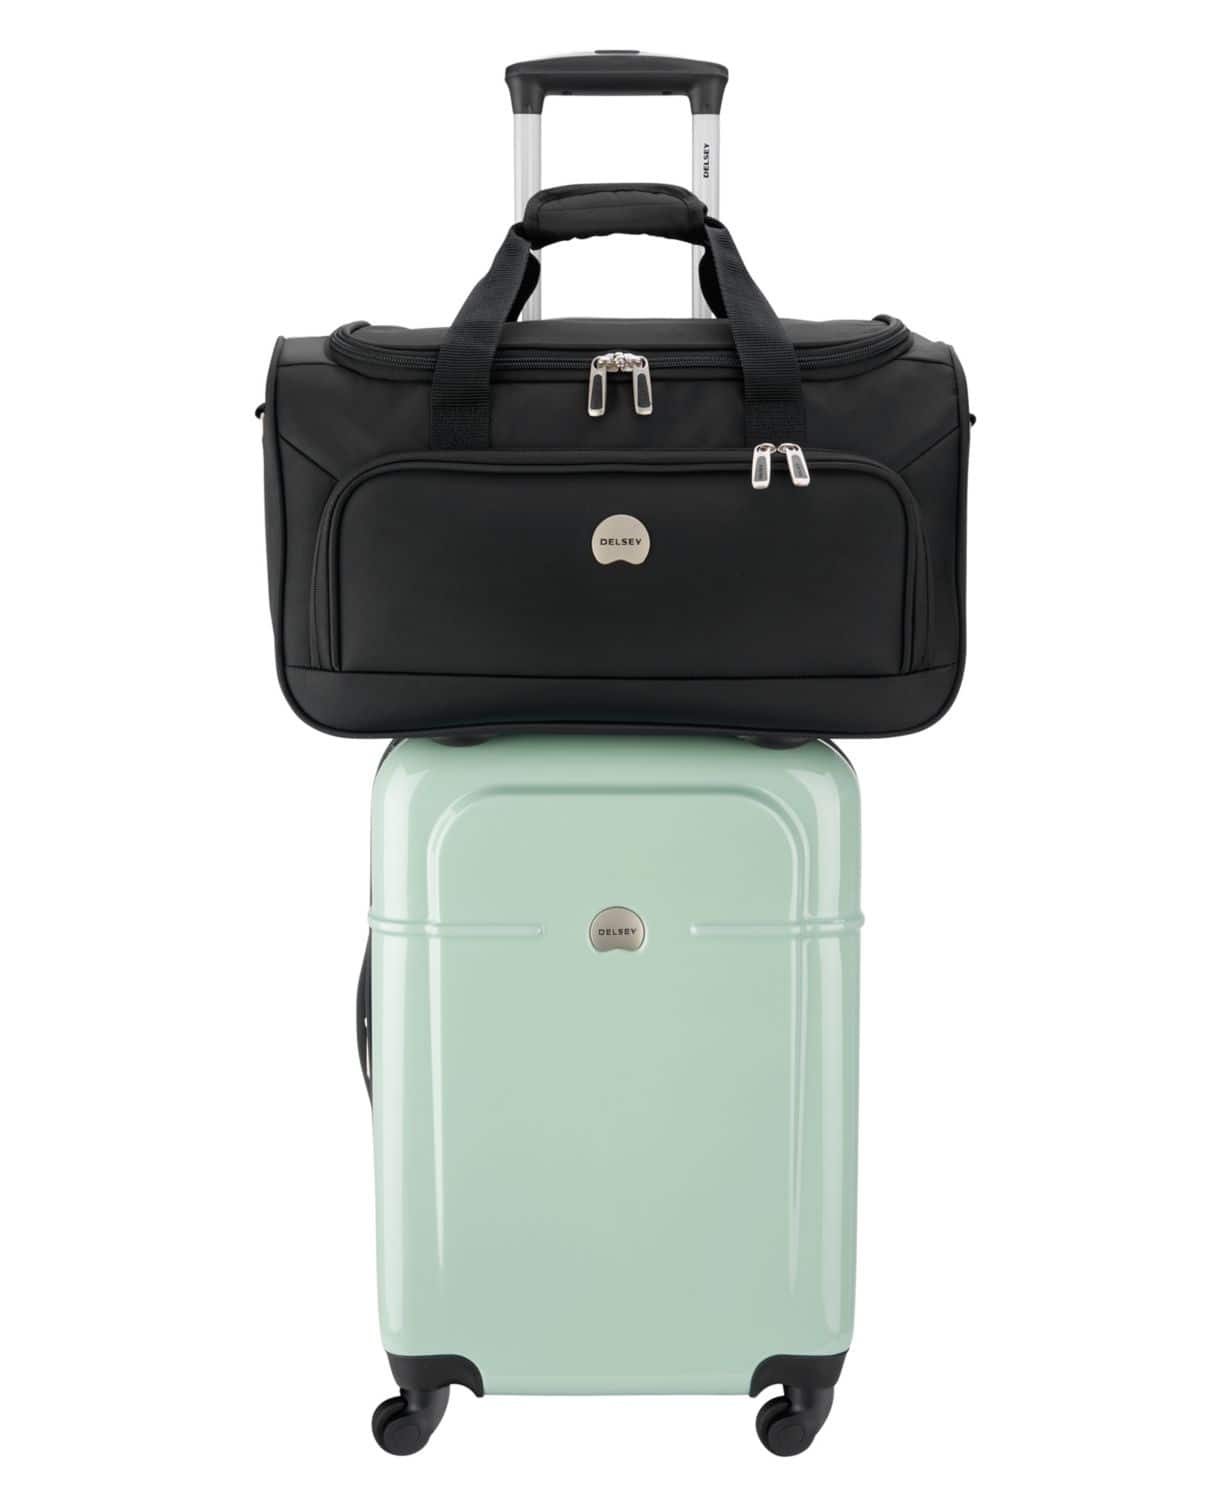 Delsey Carry-On Spinner with Bonus Duffel $79